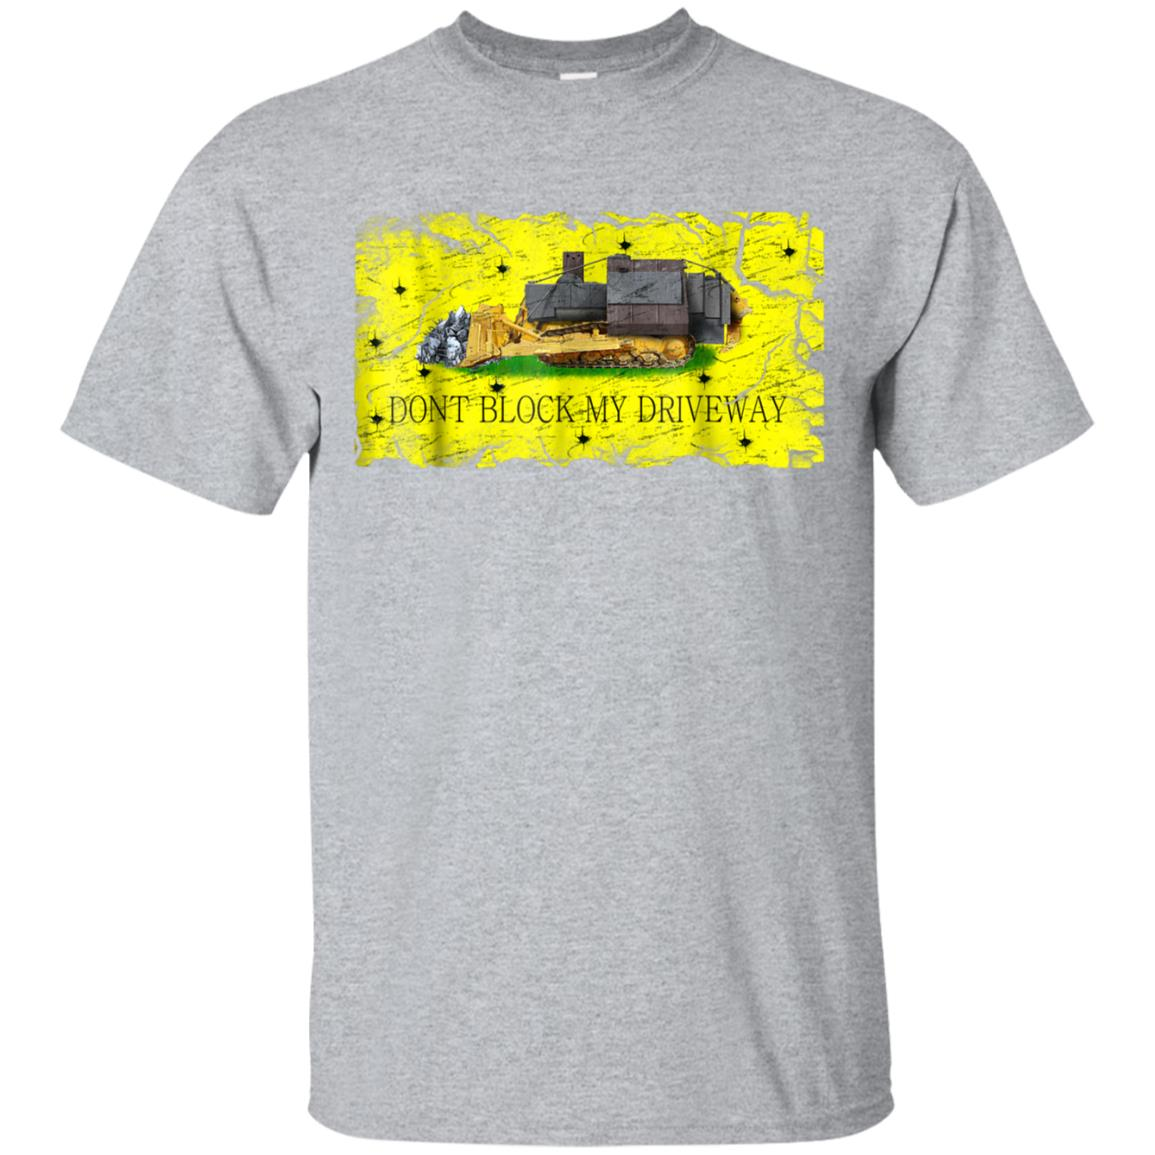 Dont Block My Driveway Gadsden Killdozer Shirt 99promocode